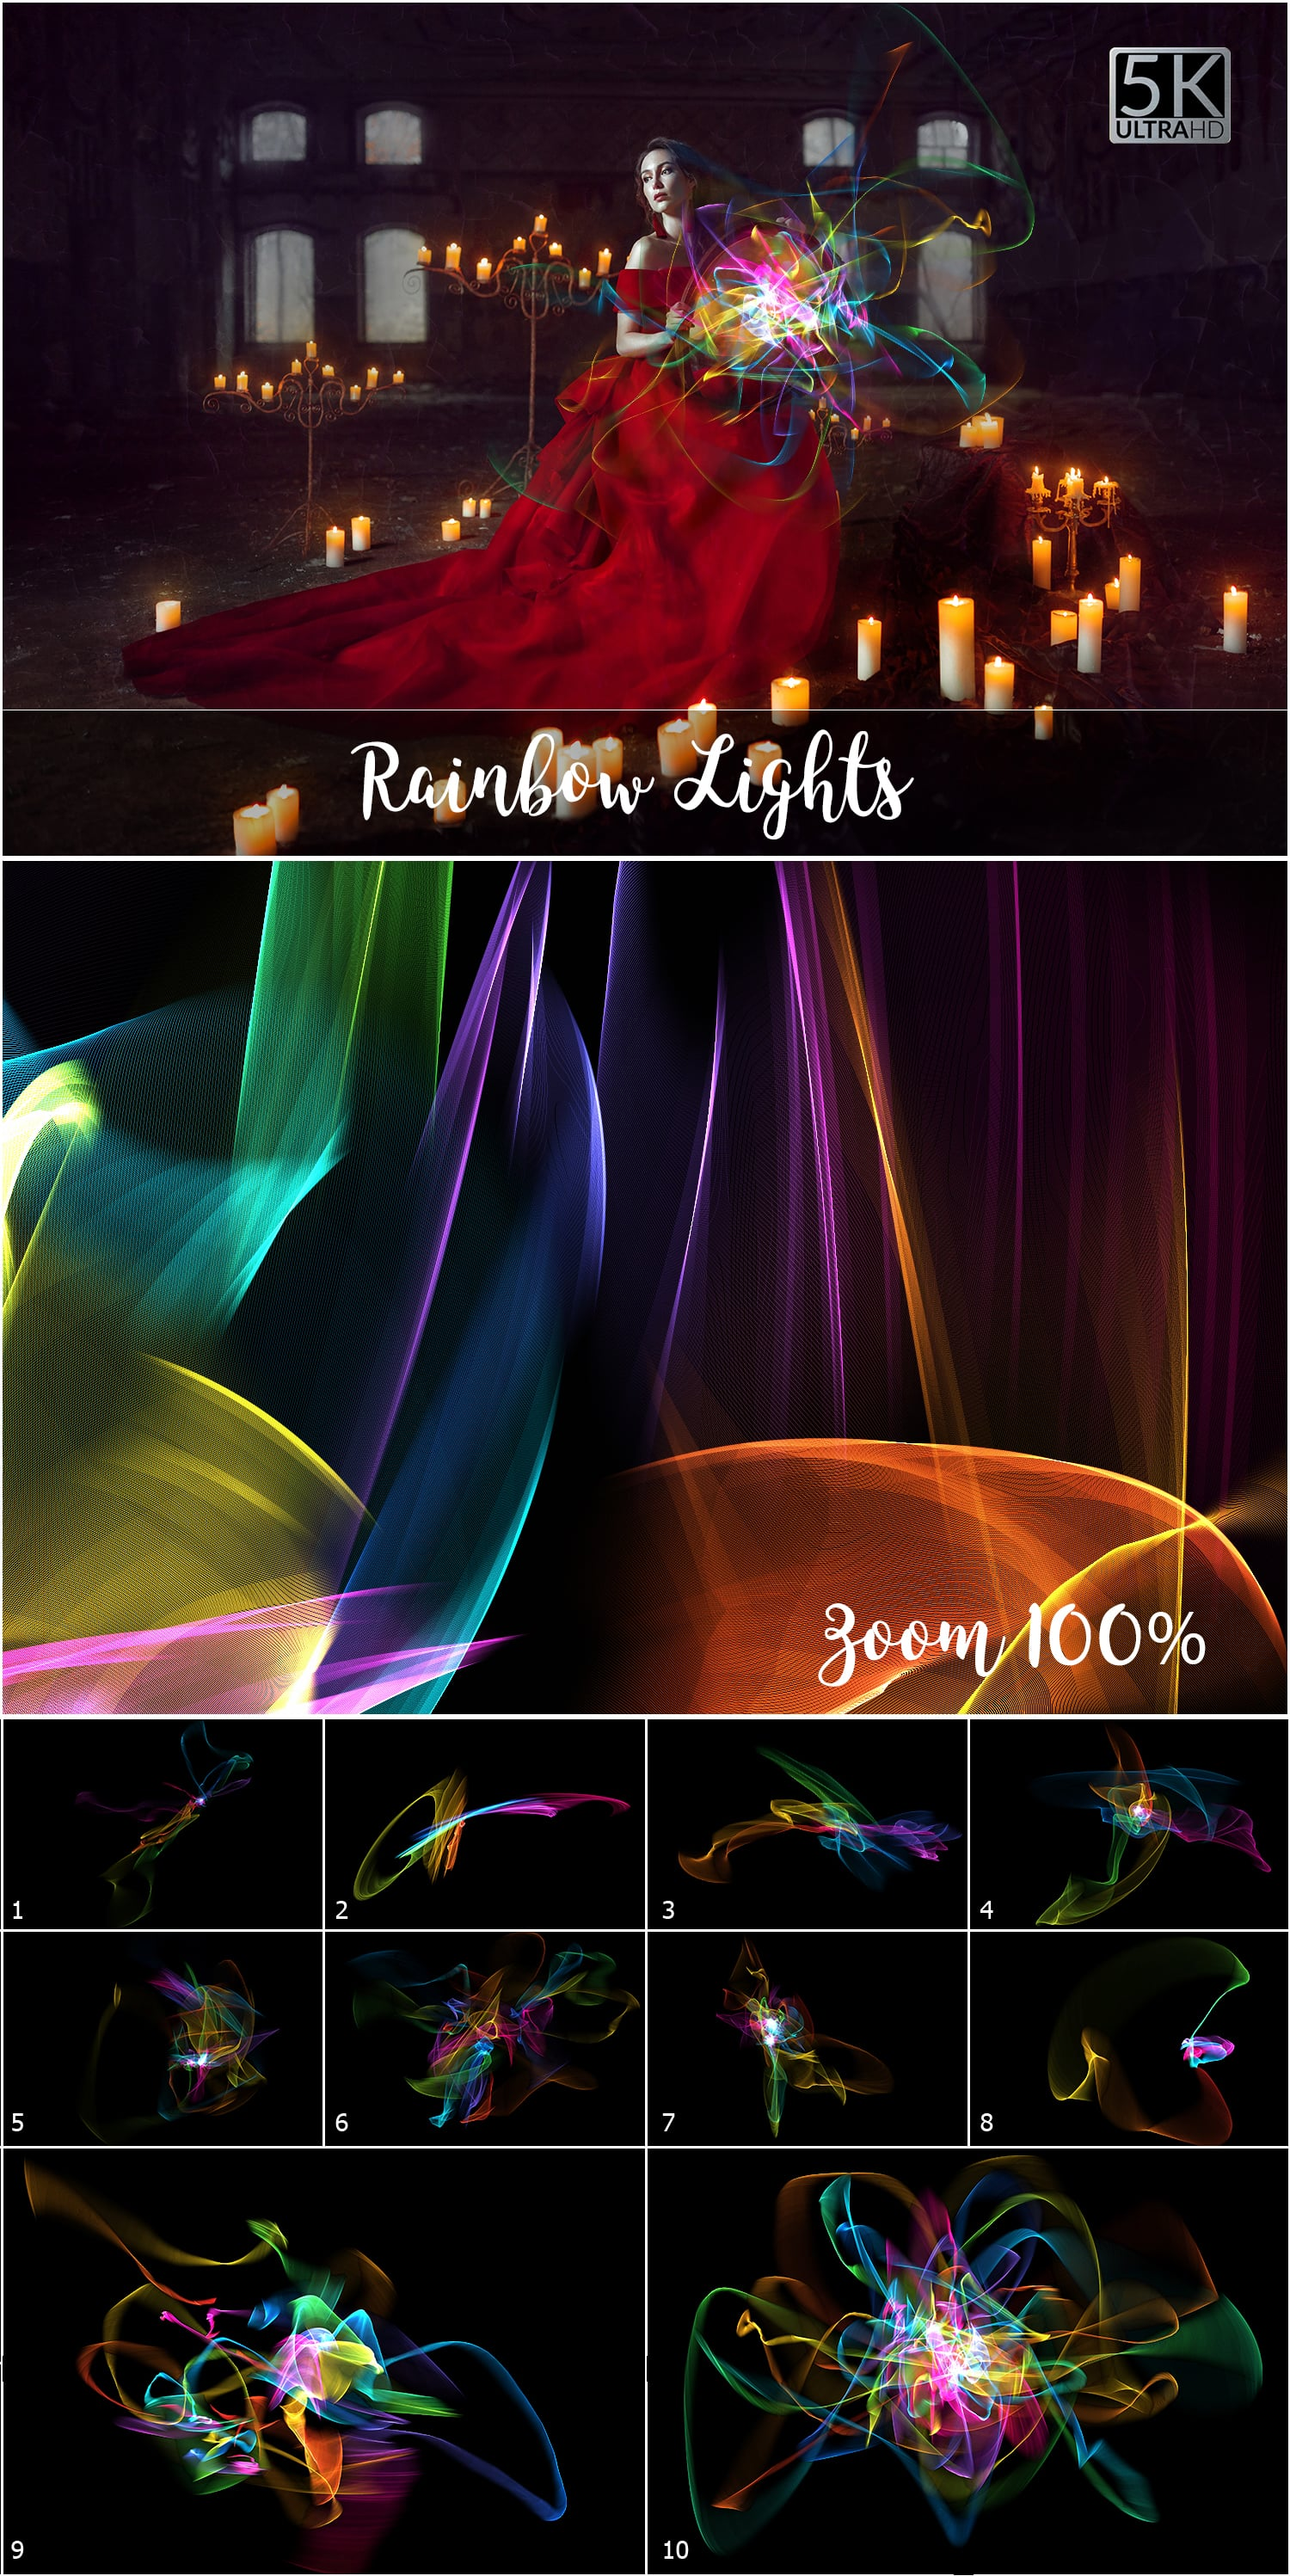 1053 Spectacular Overlays png - Only $18! - Rainbow Lights